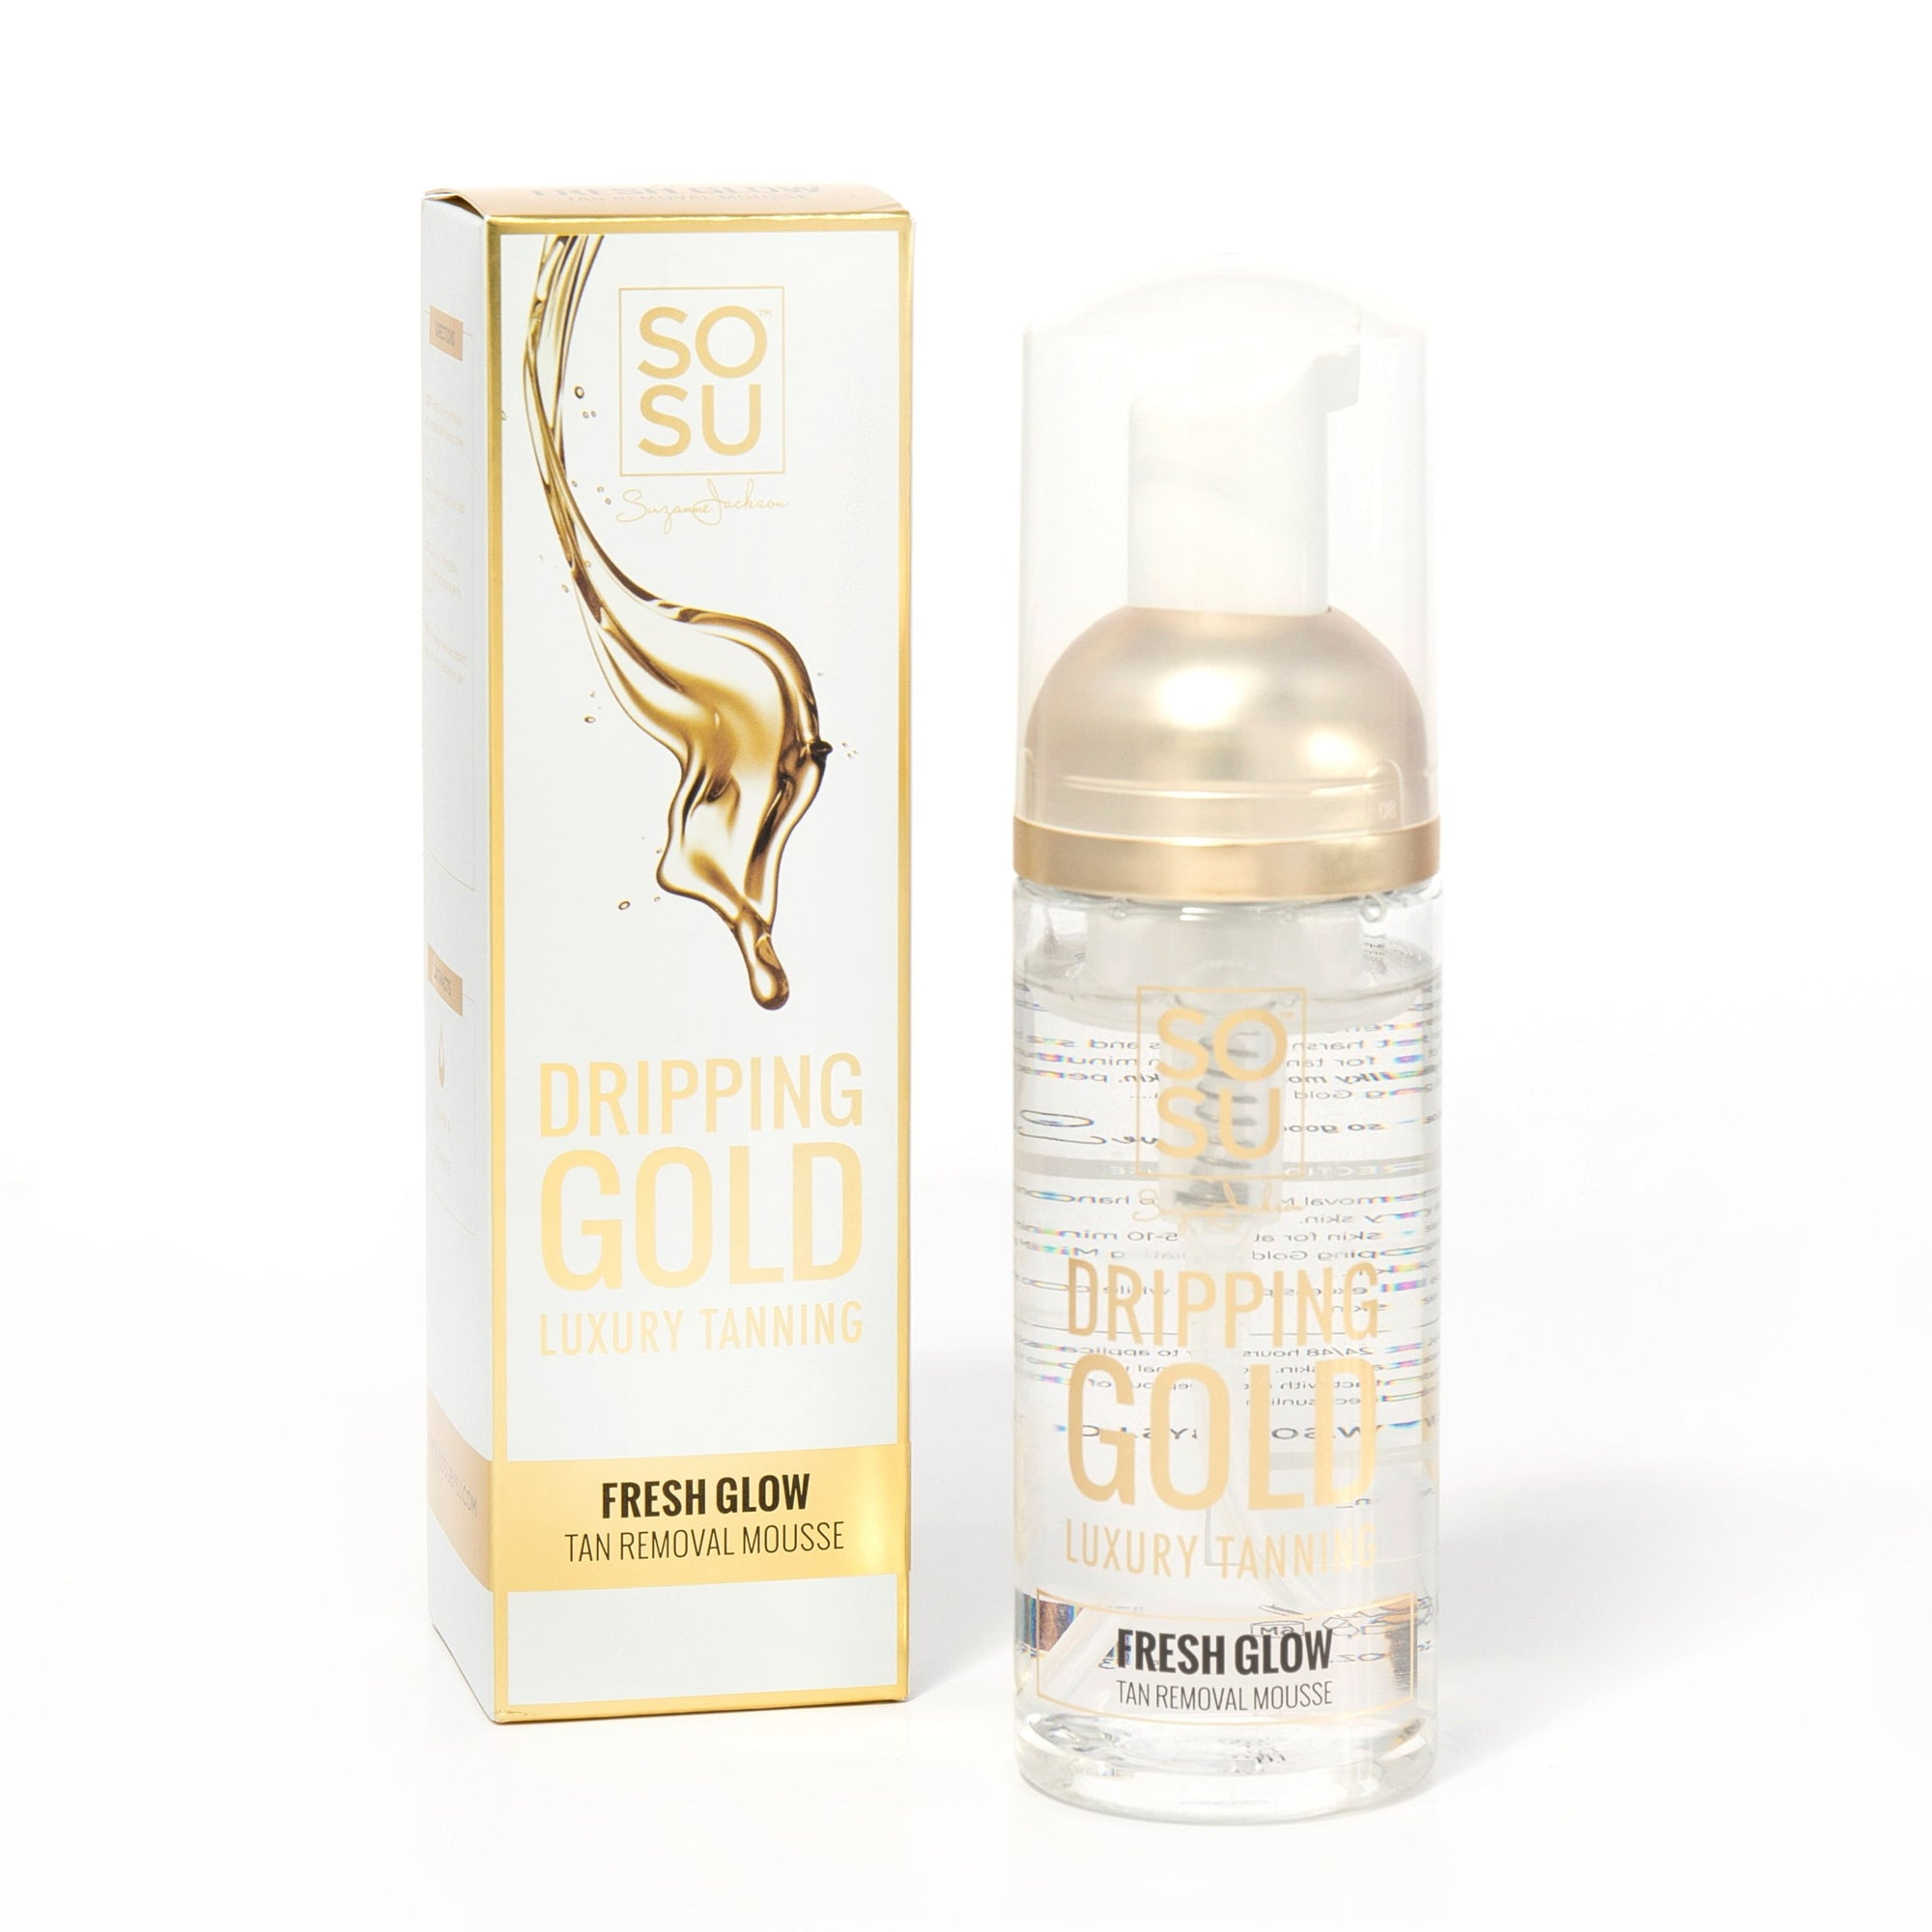 Sosu Dripping Gold Fresh Glow Tan Removal Mousse 150ml